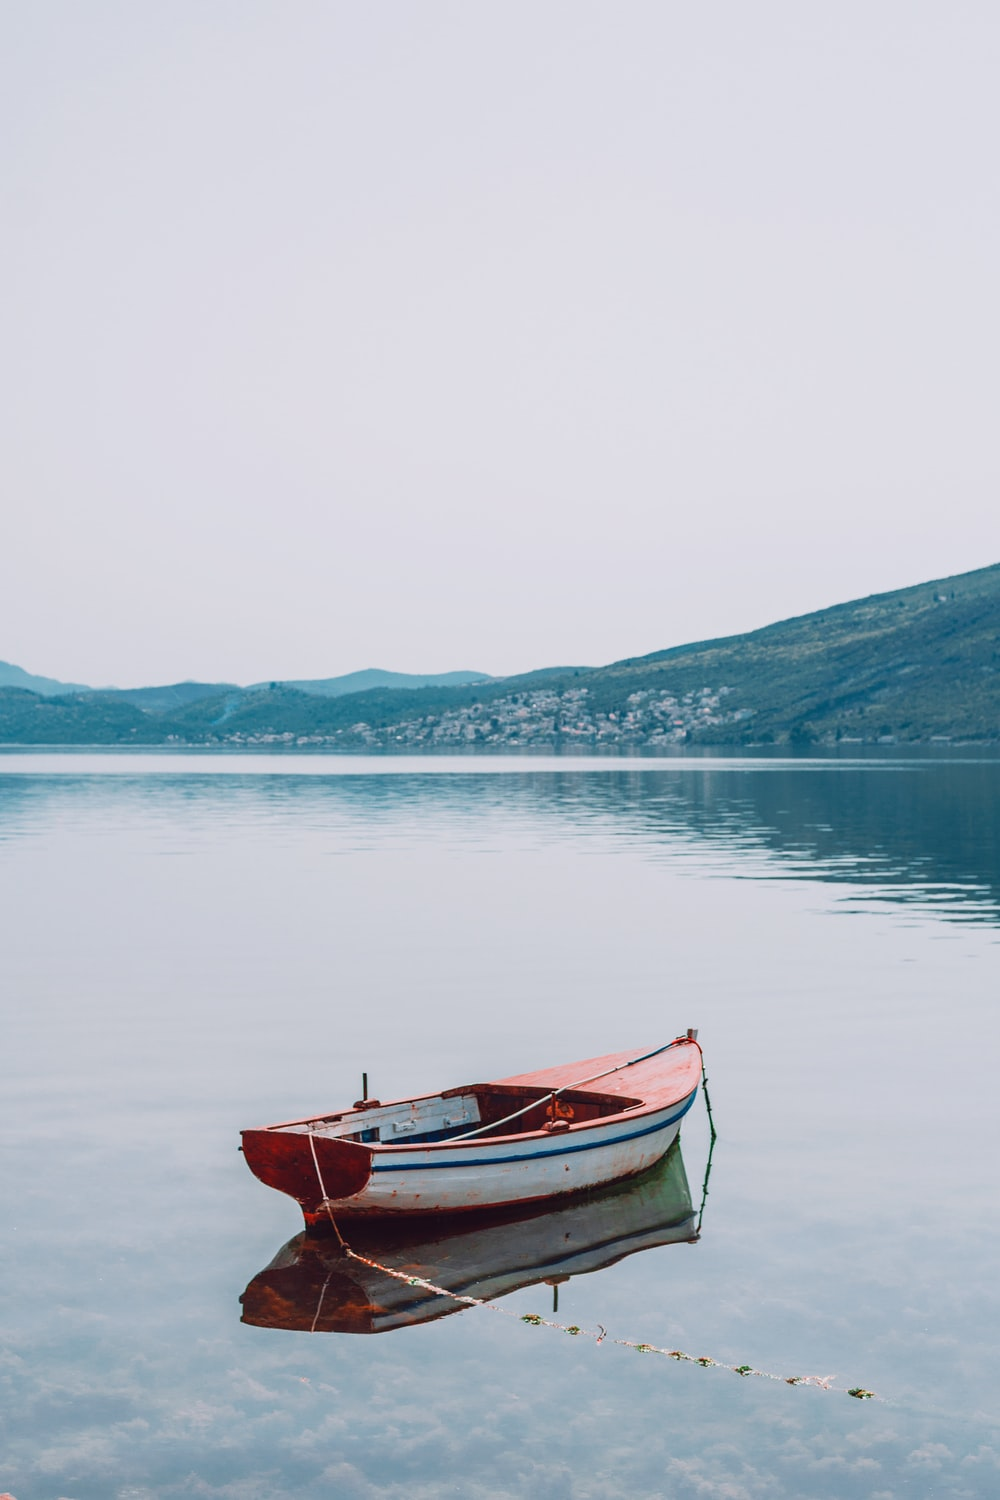 empty boat on lake during daytime